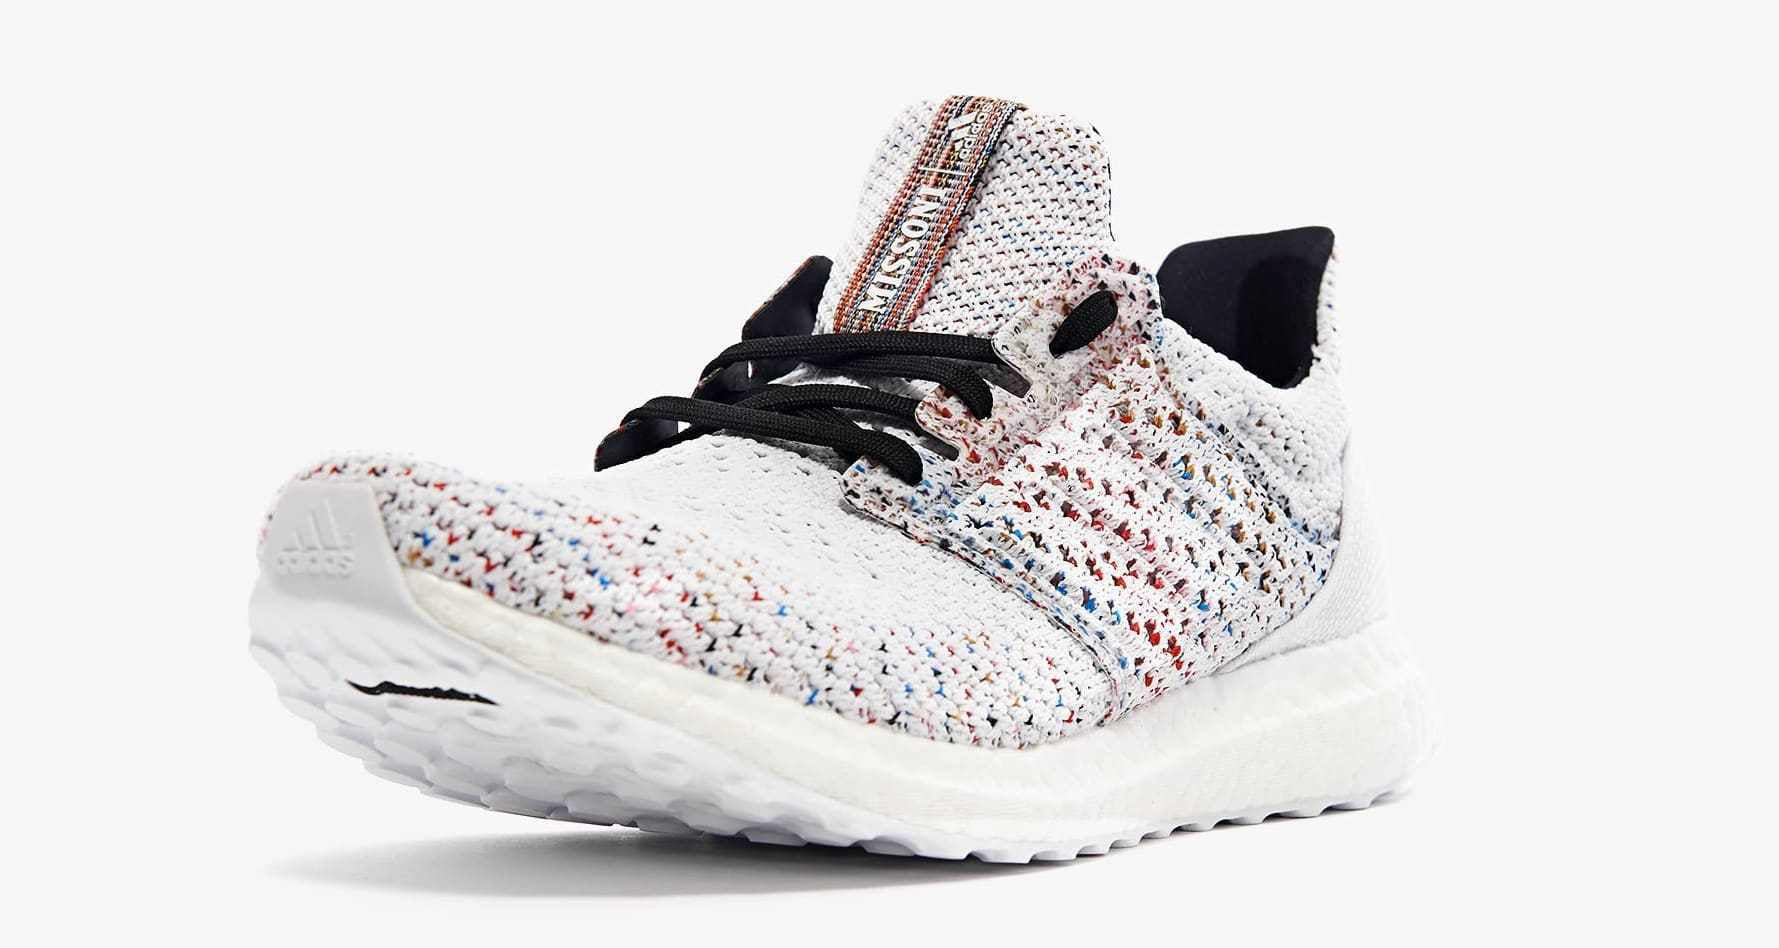 Missoni x adidas Ultra Boost Clima Pack